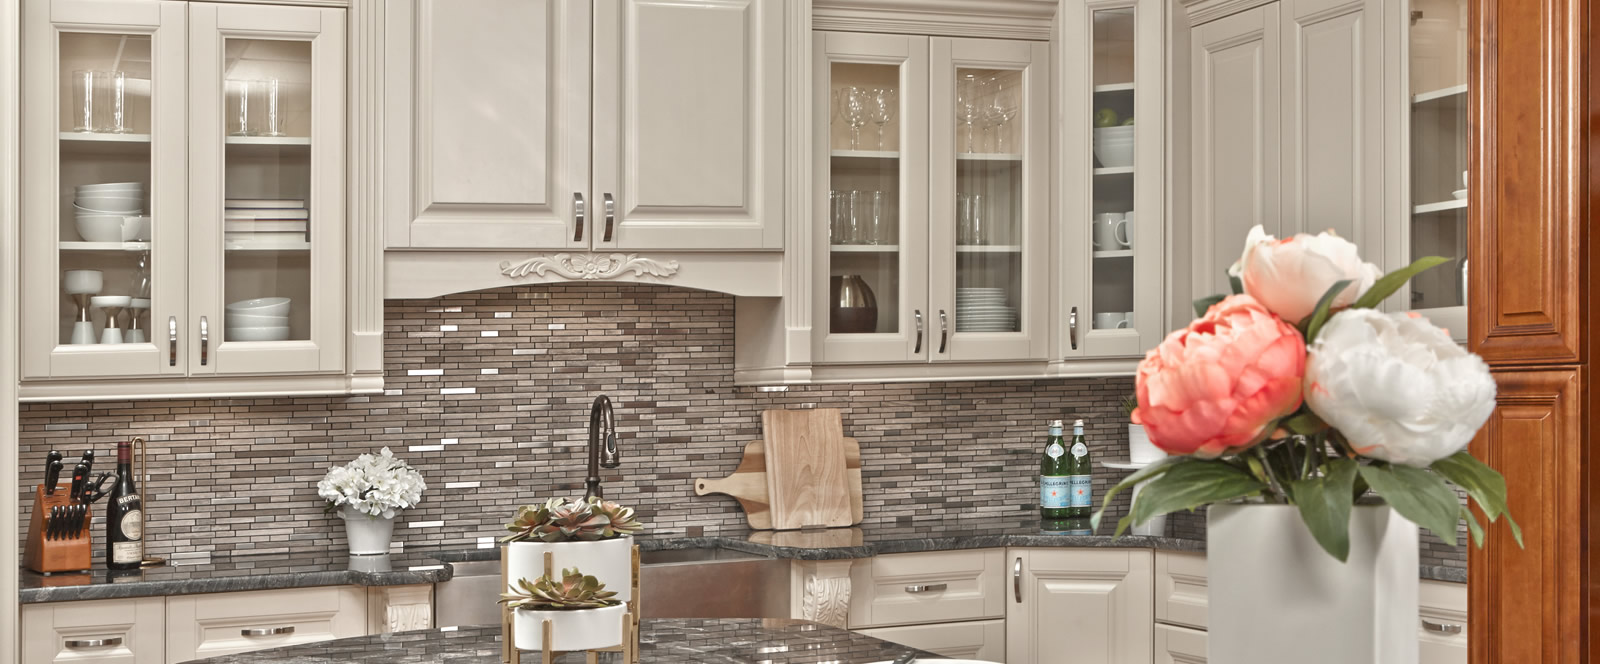 Innovation Cabinetry - Wholesale kitchen cabinets st petersburg fl